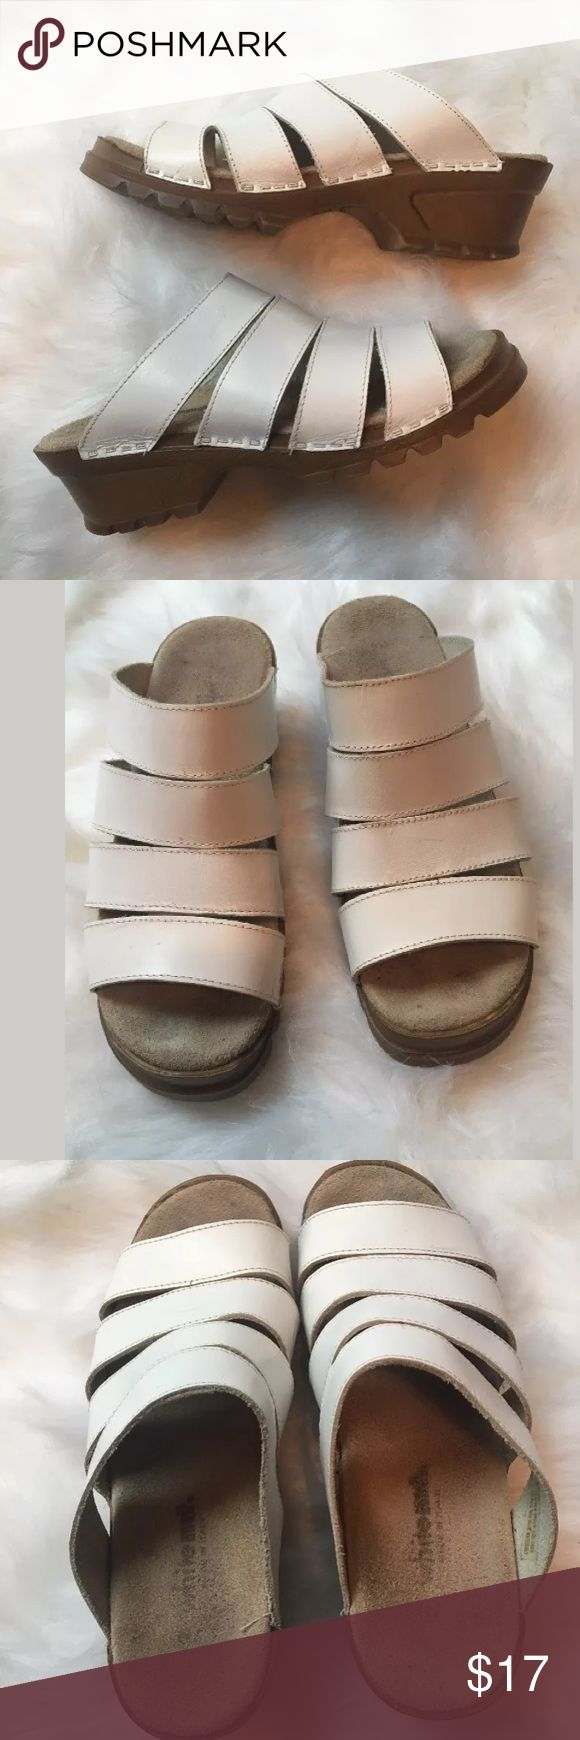 White Mountain Clogs Open Toe Leather Sandals sz 7 White Mountain  Open Toe Leather Sandals Clogs soles made in Italy  Women's Sz 7 Shoes Worn, some separation on back as shown. Also some markings on leather as shown. White Mountain Shoes Mules & Clogs